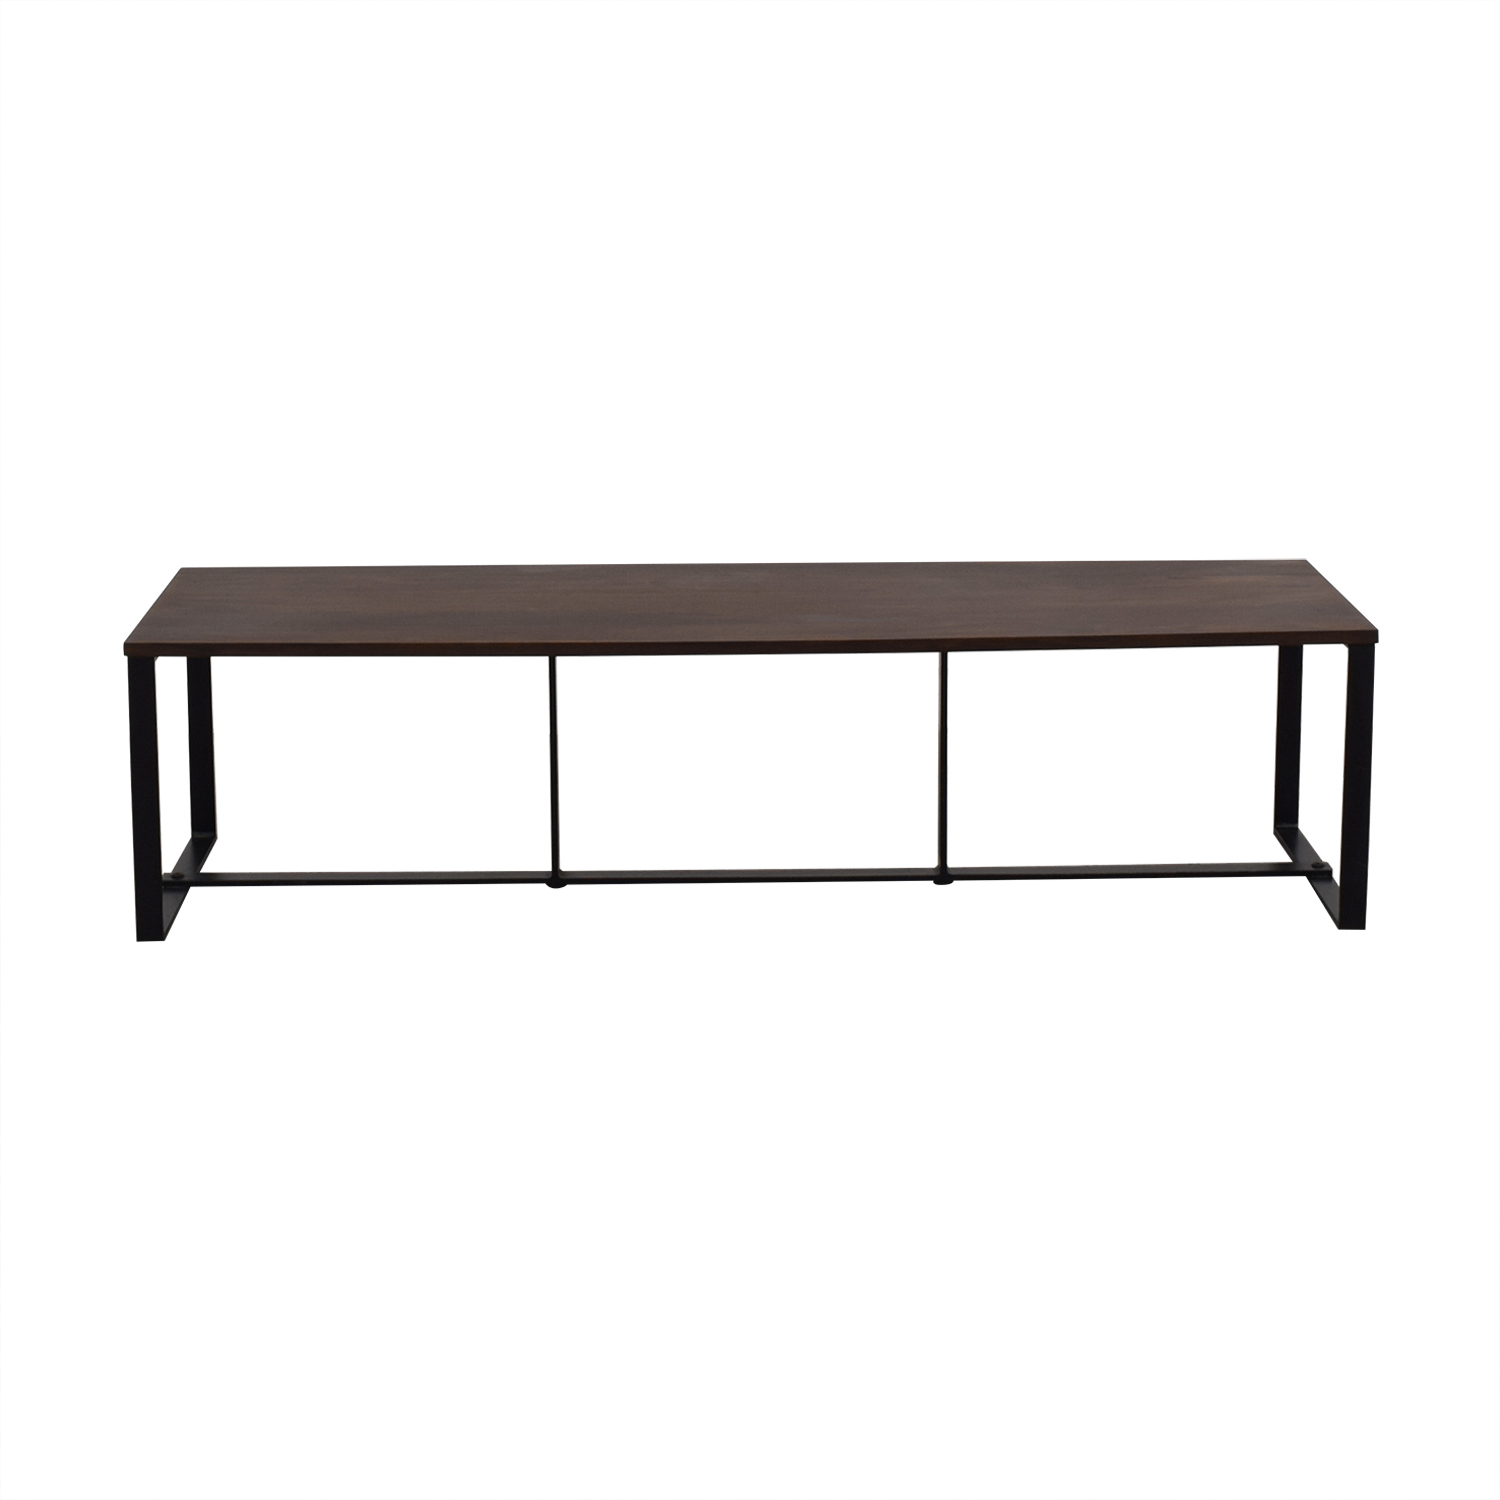 Furniture Masters Furniture Masters Industrial Coffee Table nyc